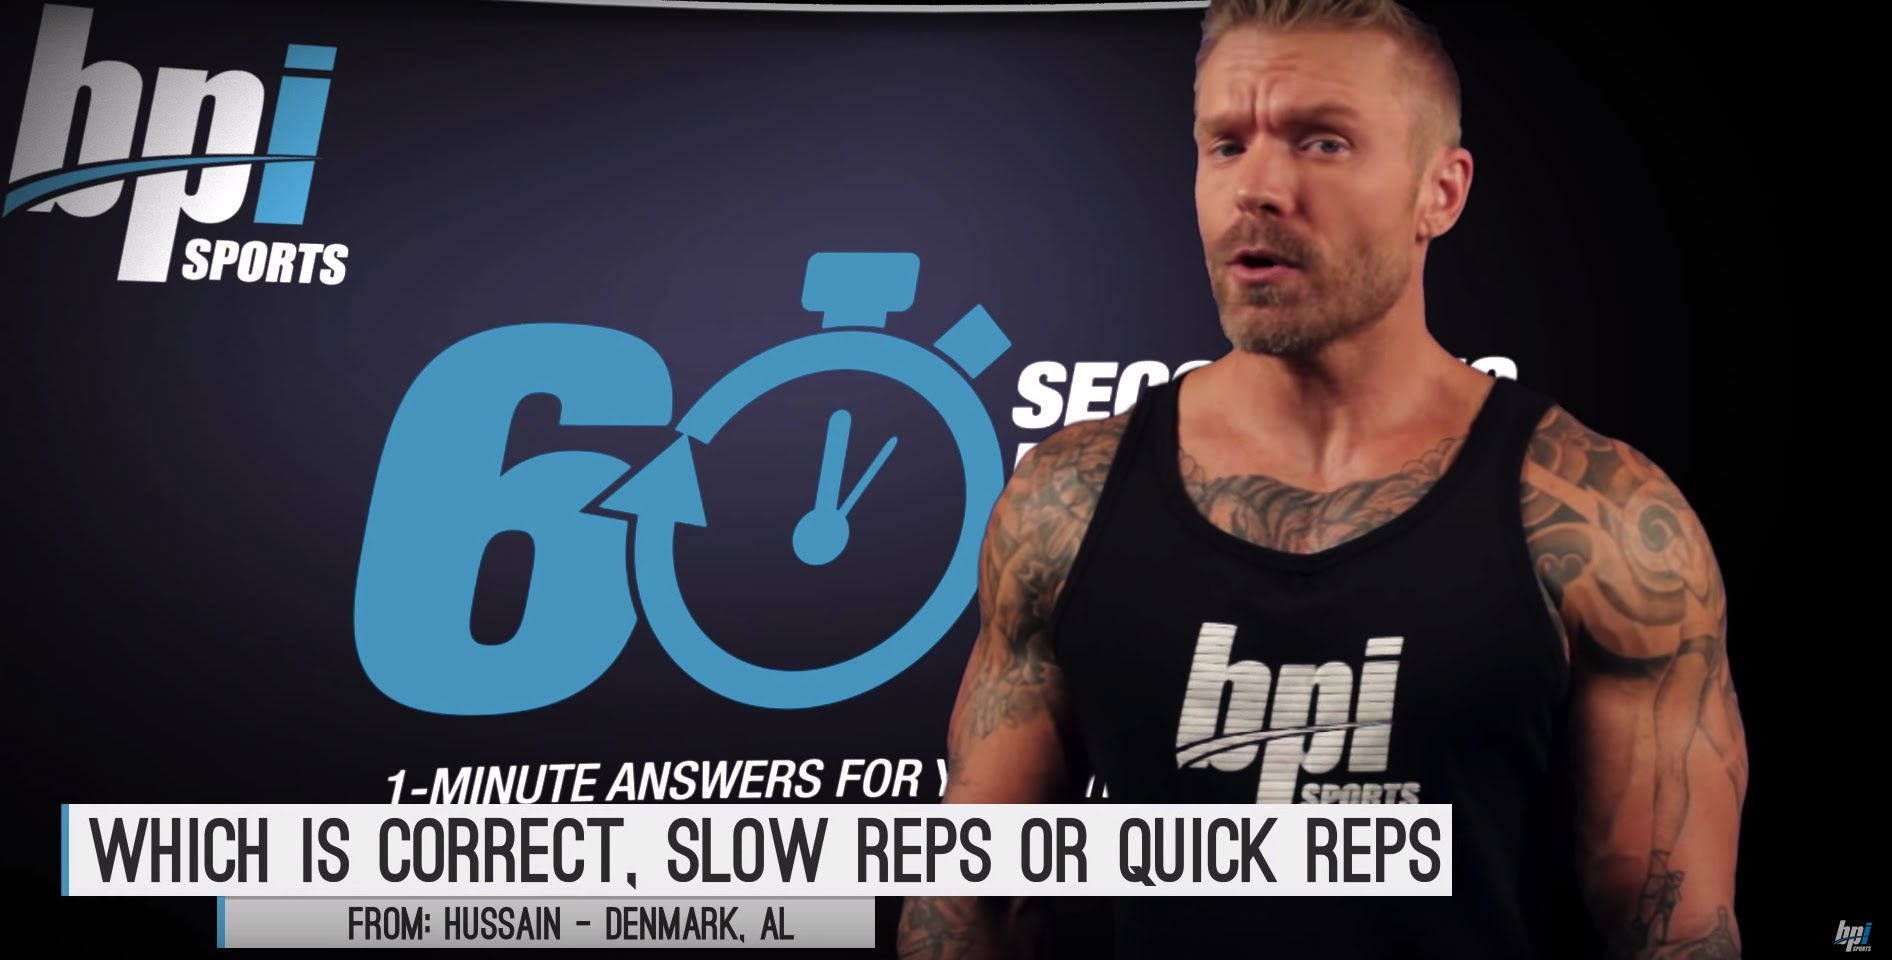 Slow-Reps-vs-Quick-Reps-60-Seconds-to-Fit-with-James-Grage-BPI-Sports